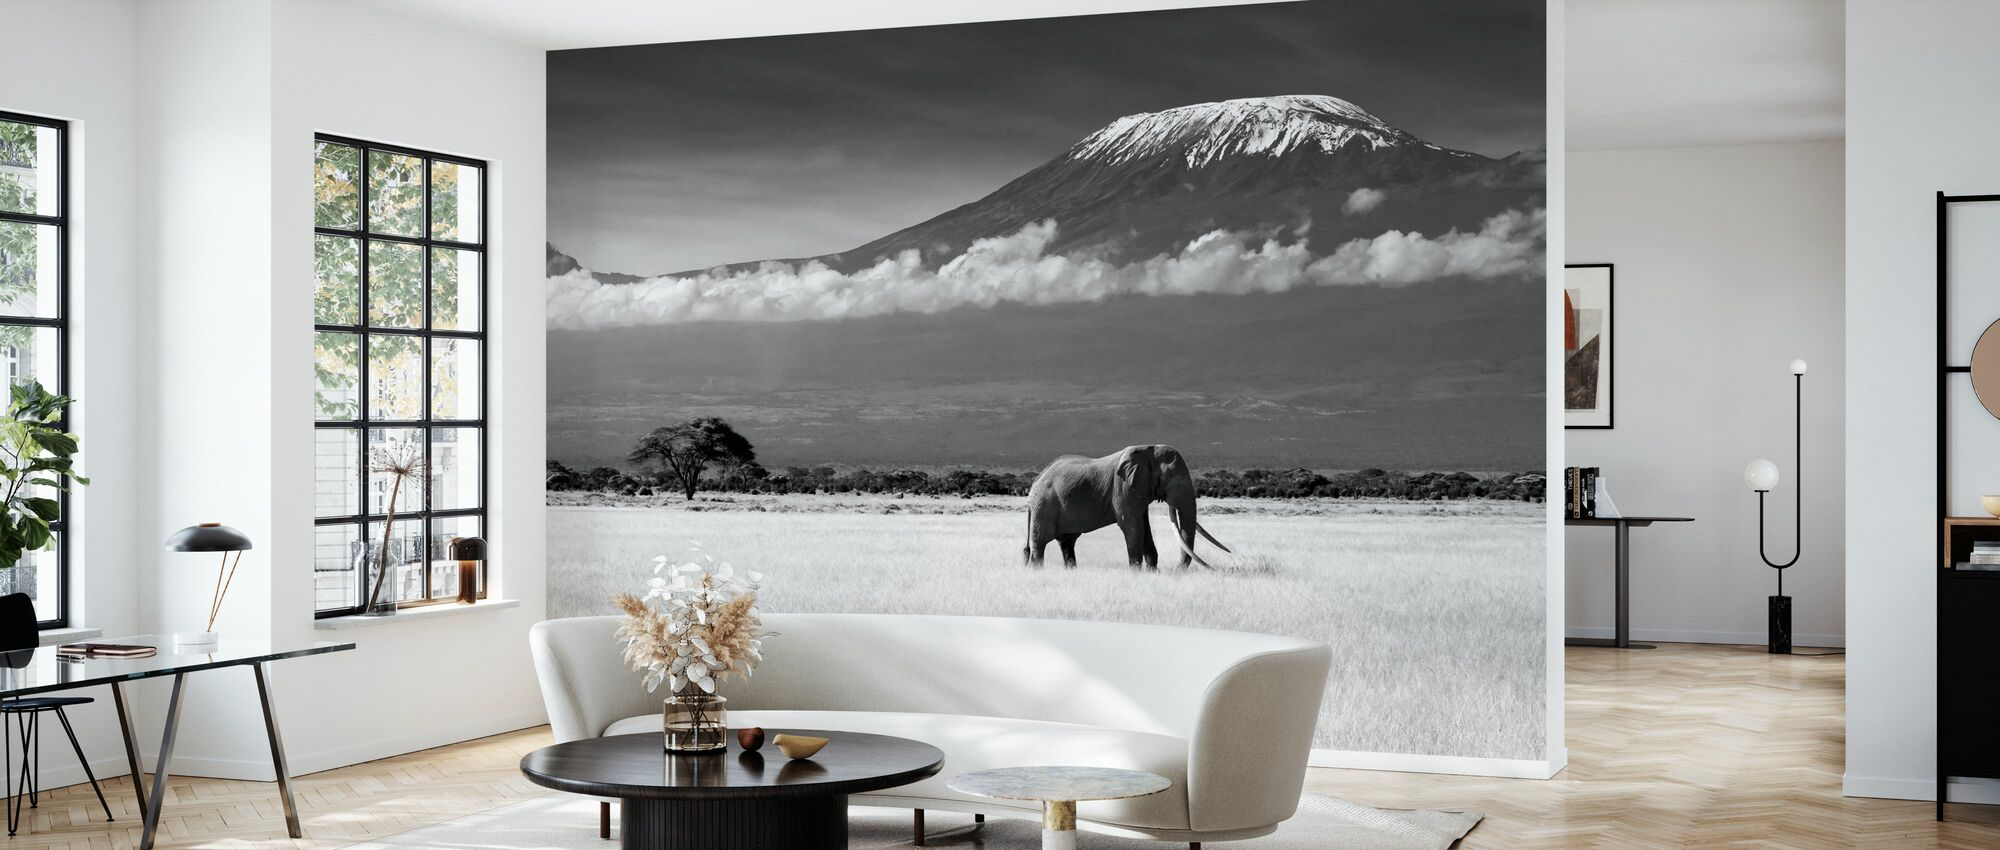 Elephant Landscape - Wallpaper - Living Room